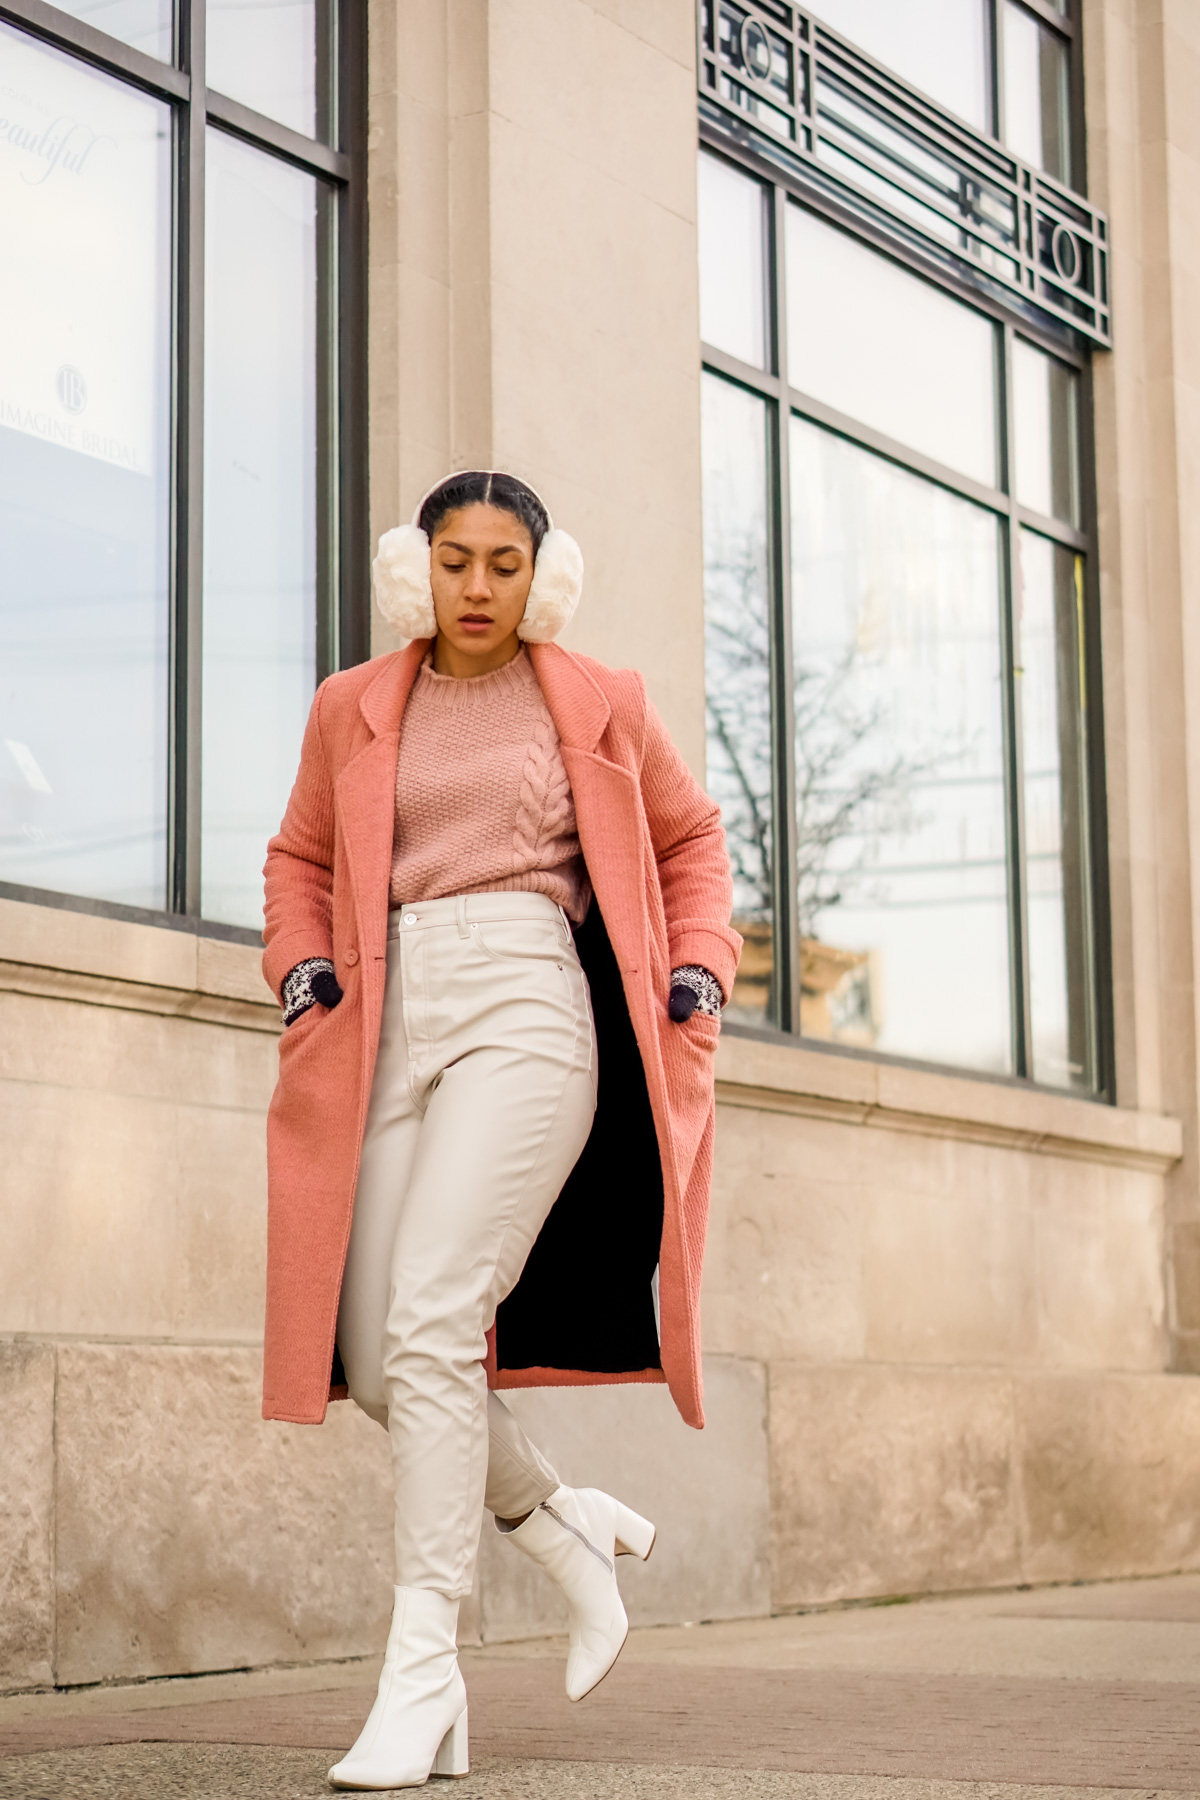 pink and white outfit black girl, spring outfits women, colorblock outfits, black fashion blogger style outfit, spring fashion